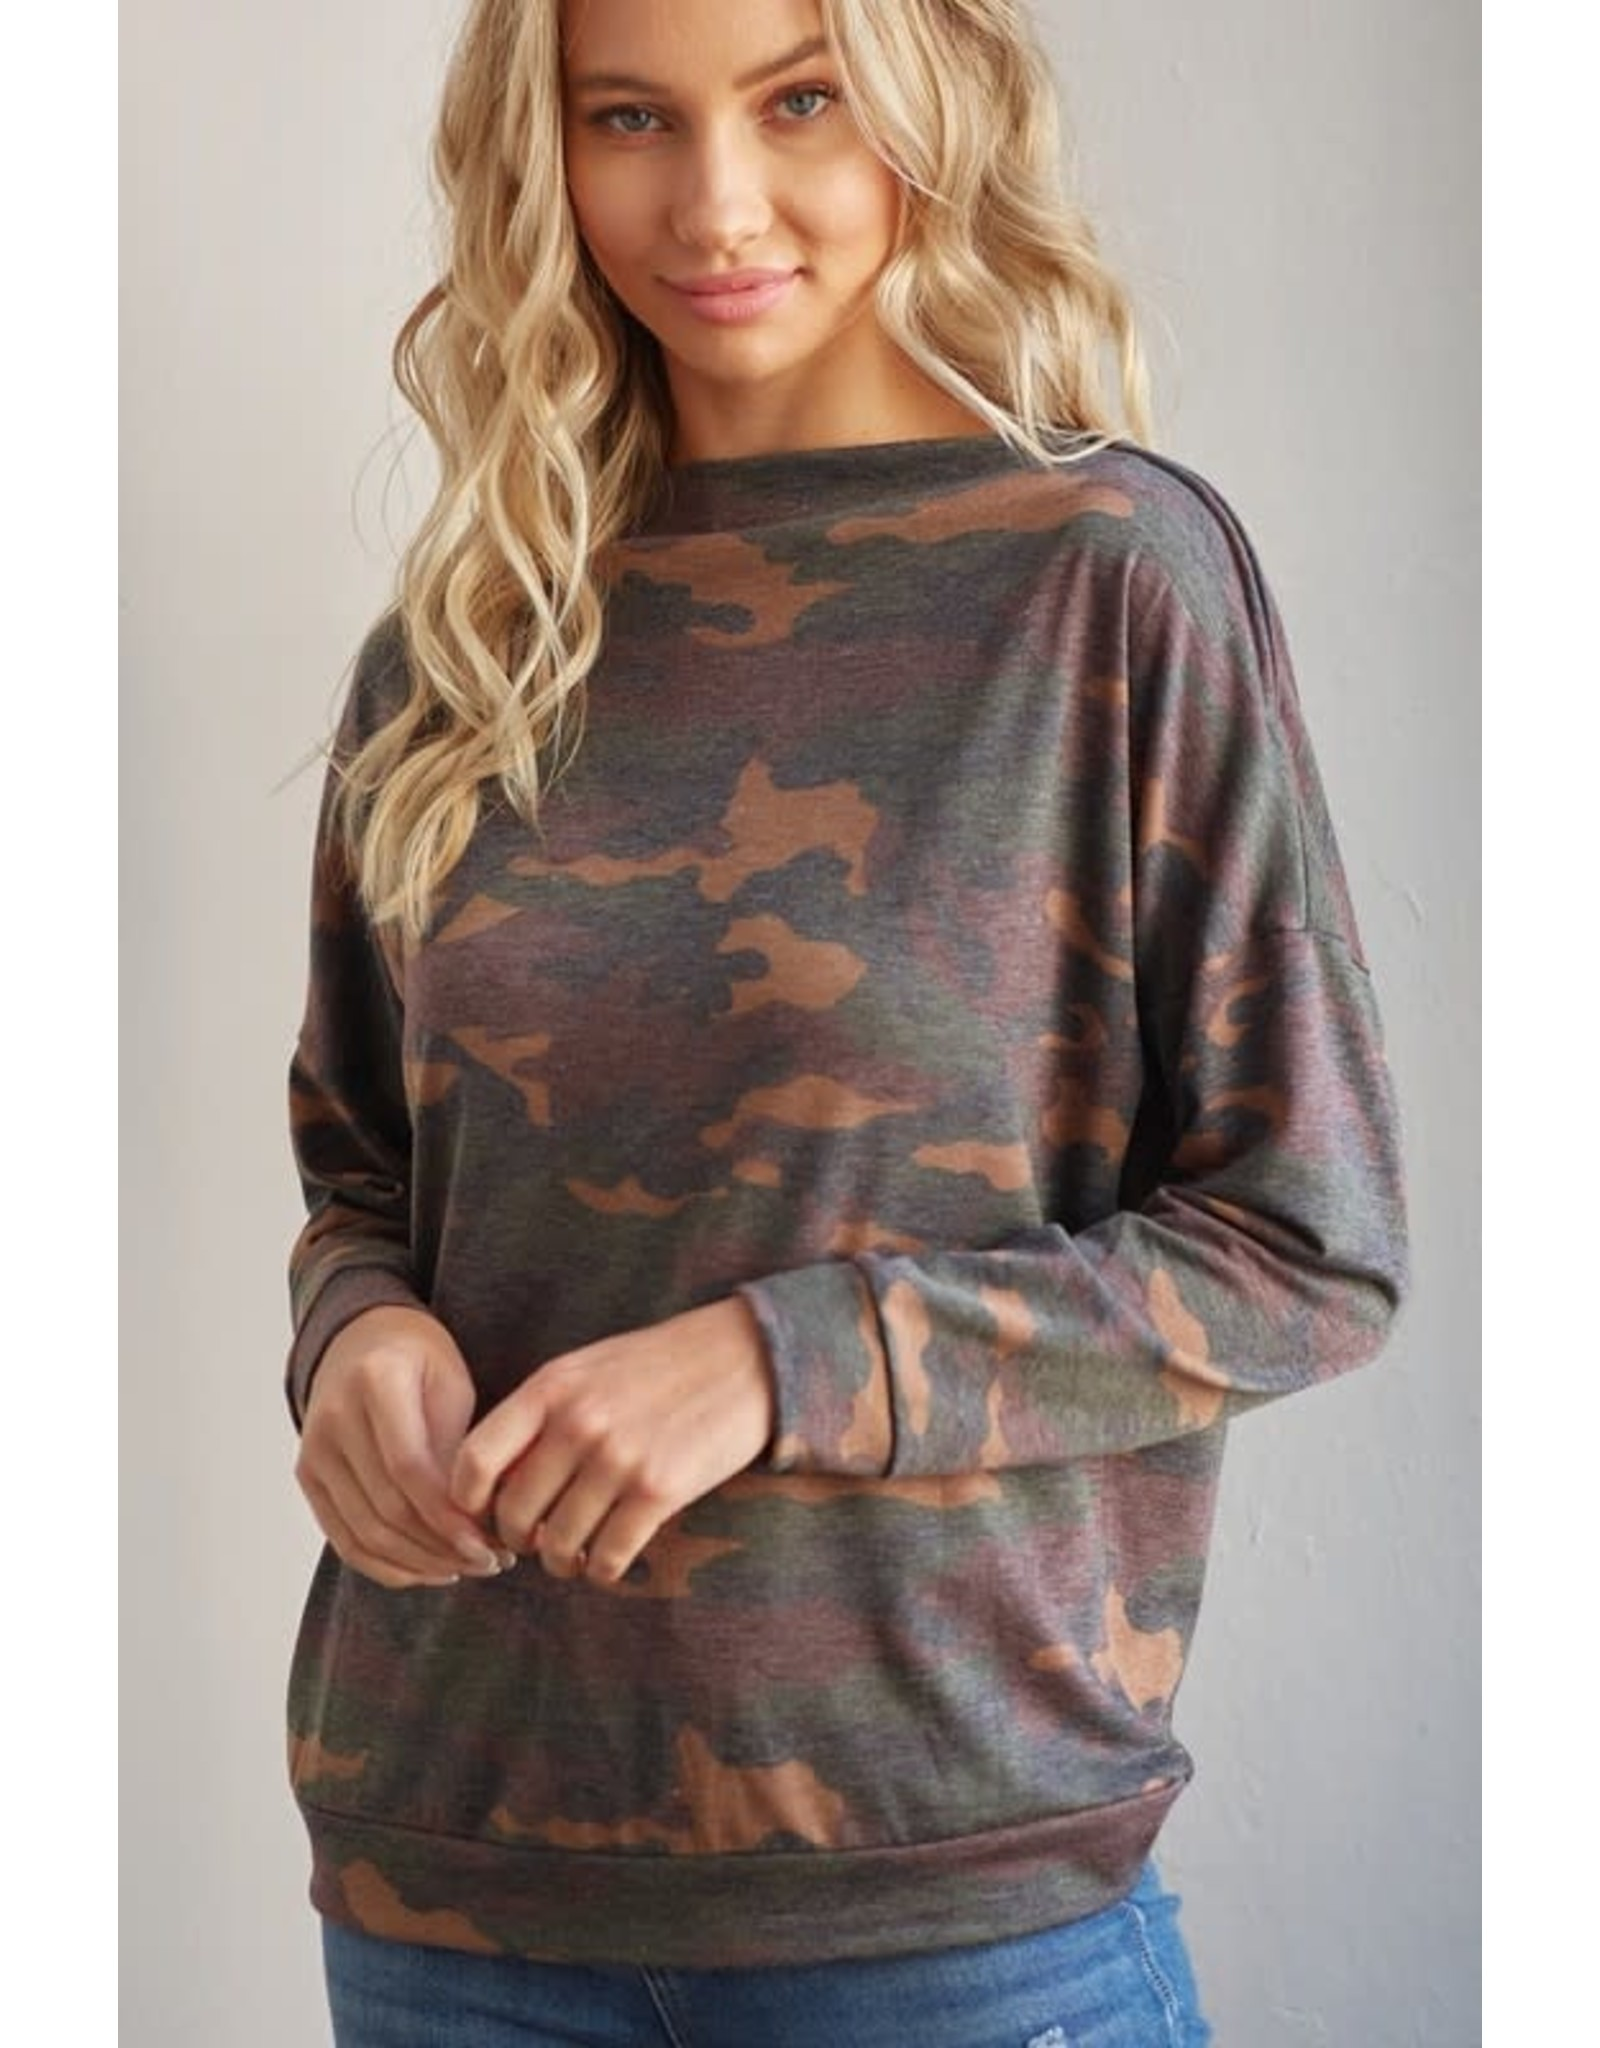 CY Fashion CAMO Zipper Shoulder Top